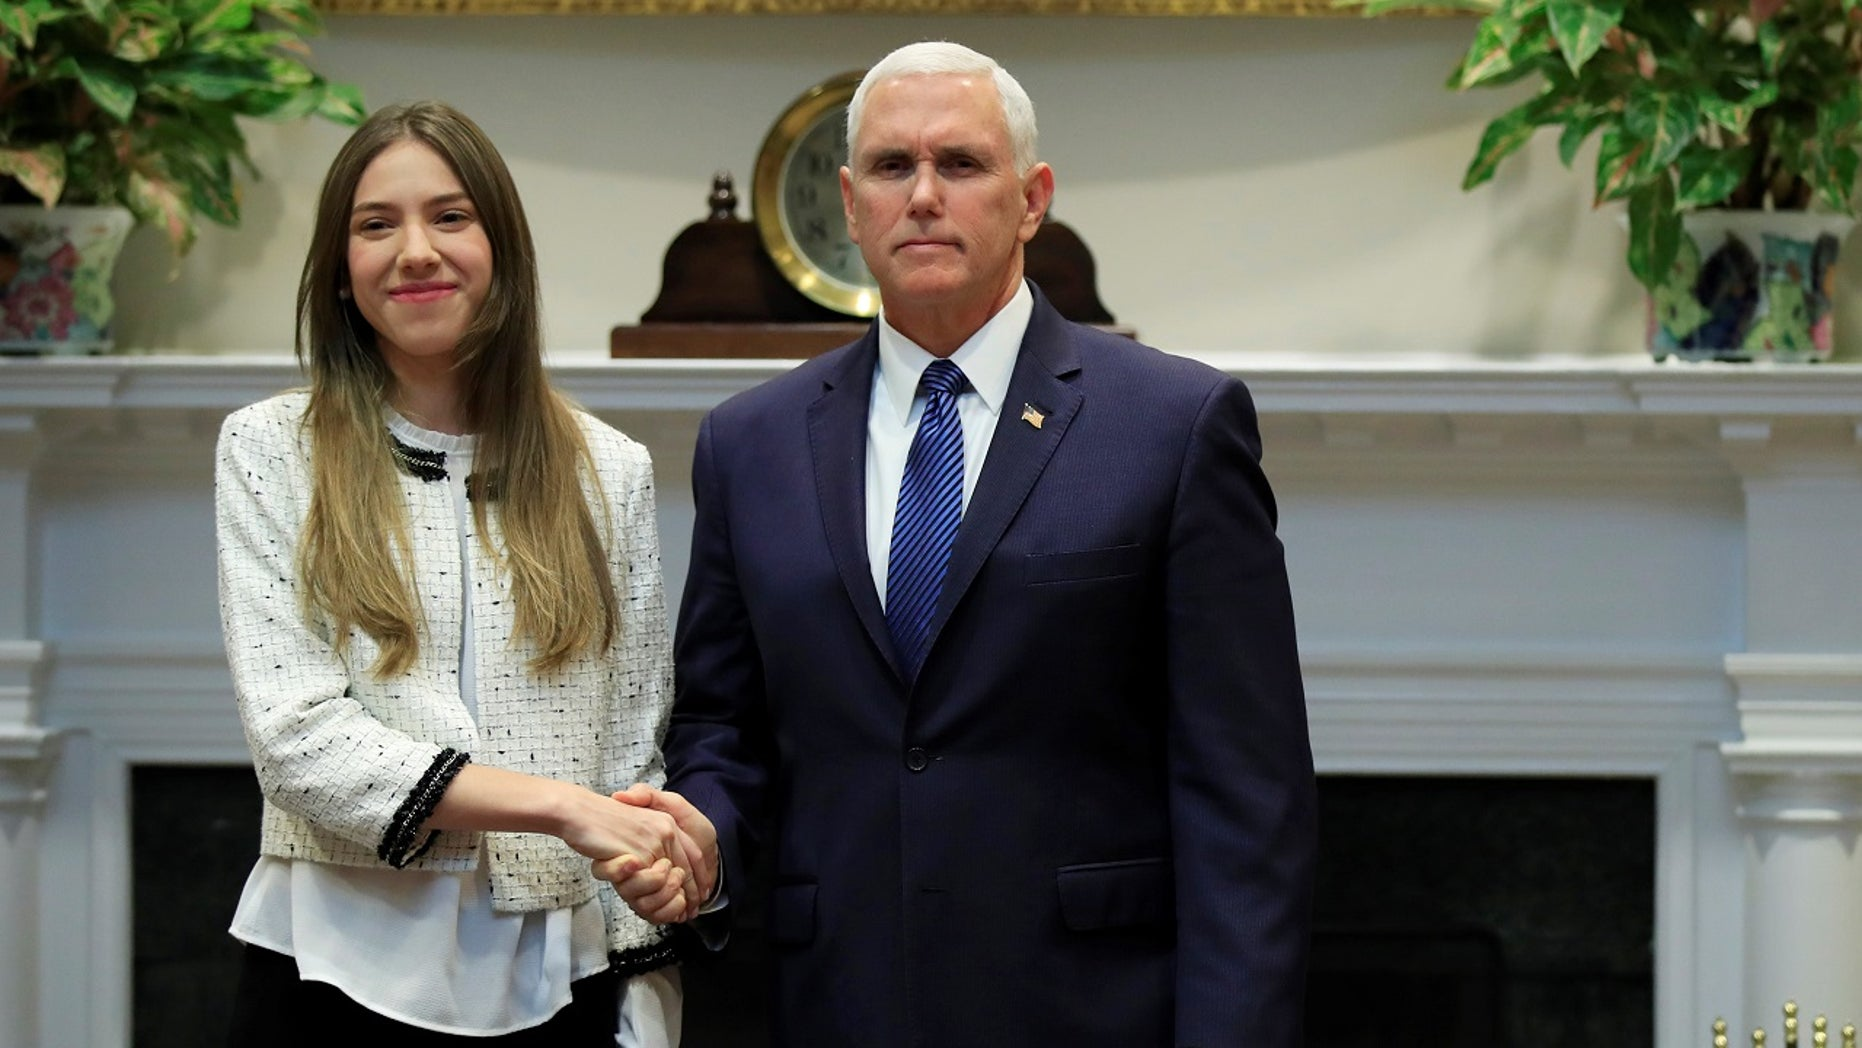 Vice President Mike Pence welcomes Fabiana Rosales, left, wife of Venezuelan opposition leader Juan Guaido, in the Roosevelt Room of the White House in Washington, Tuesday, March 26, 2019. (Associated Press)